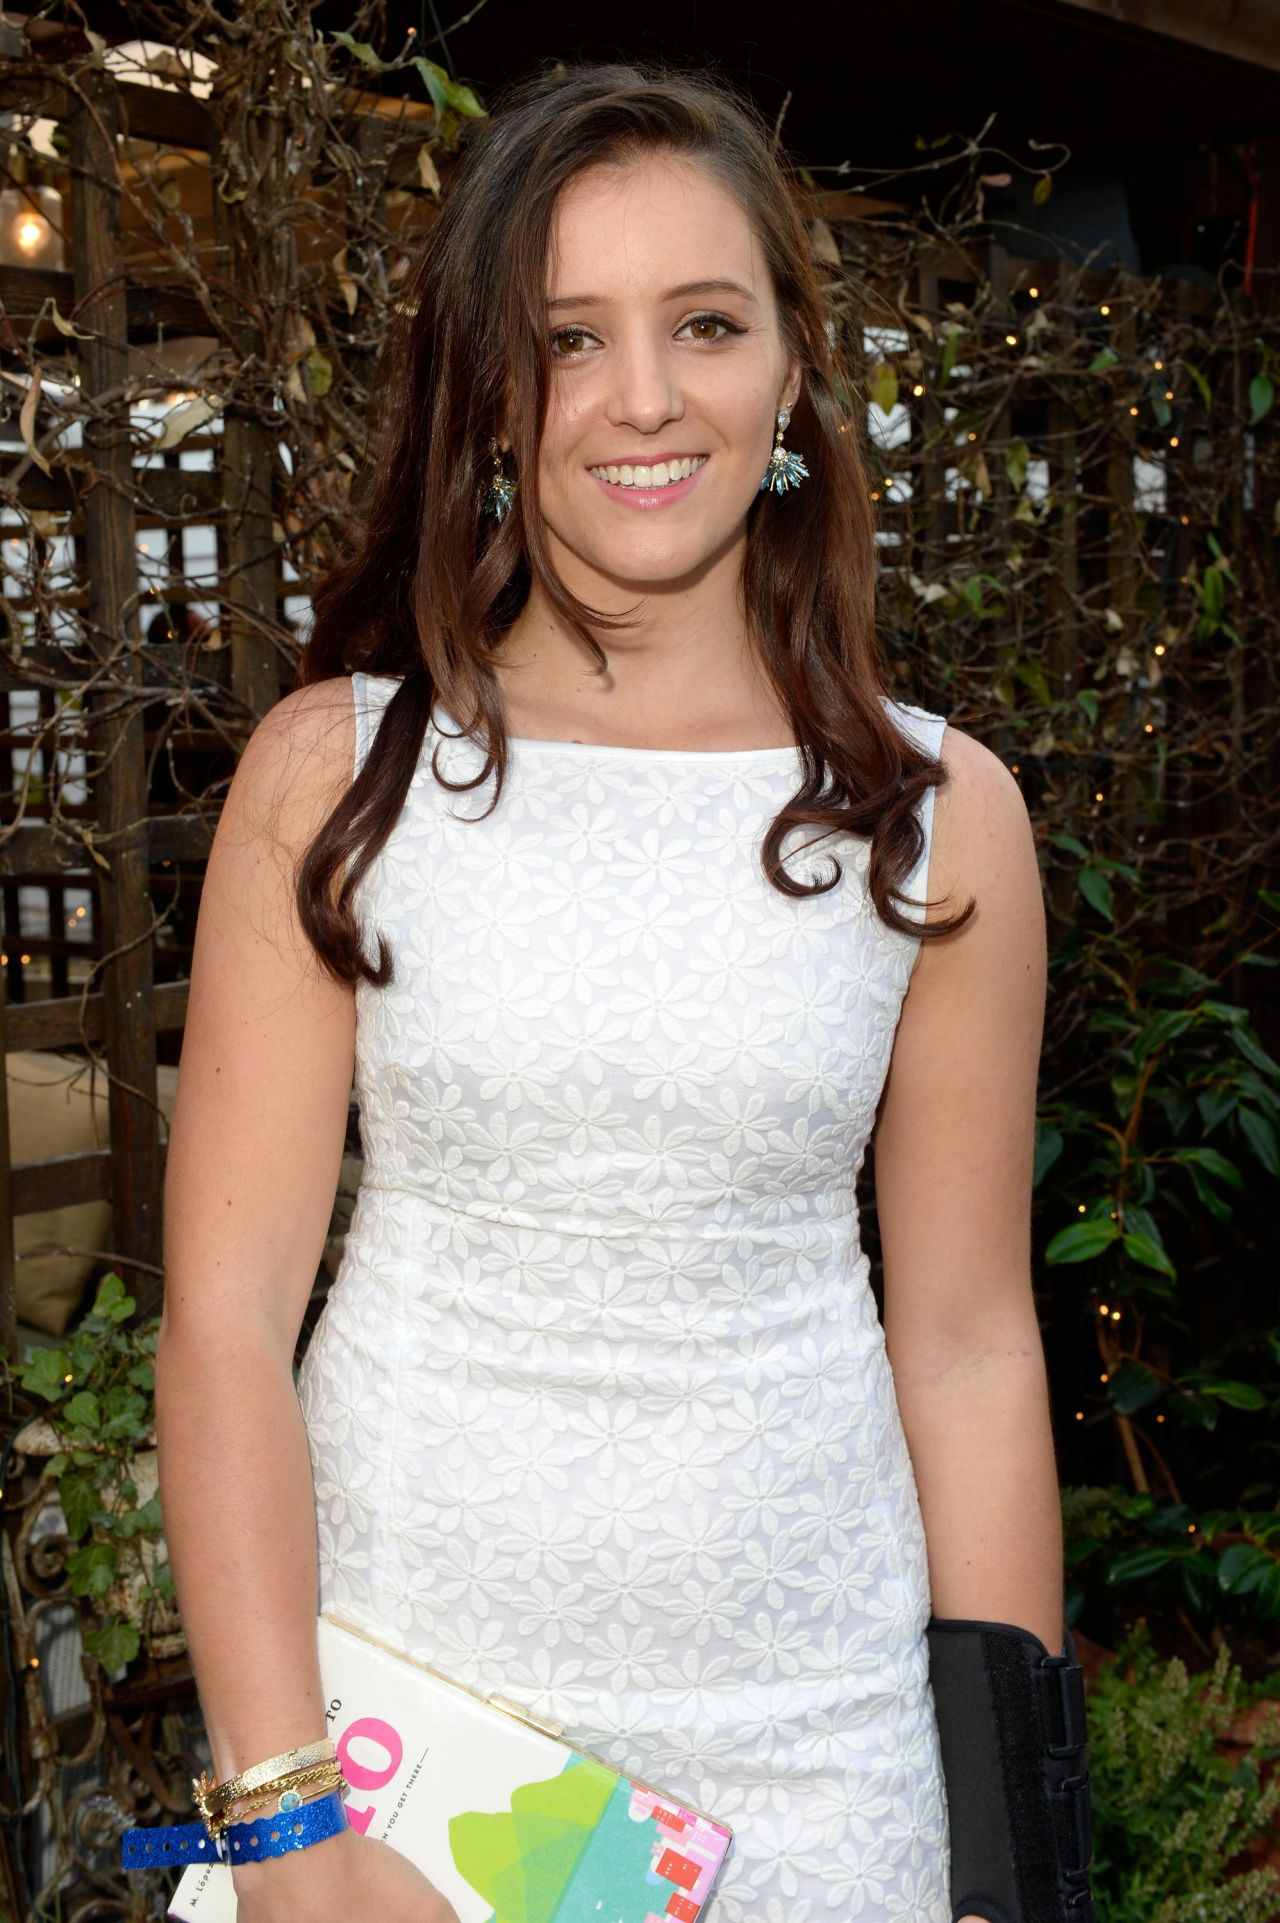 Laura Robson at Warners & GQ Summer Party - July 2014